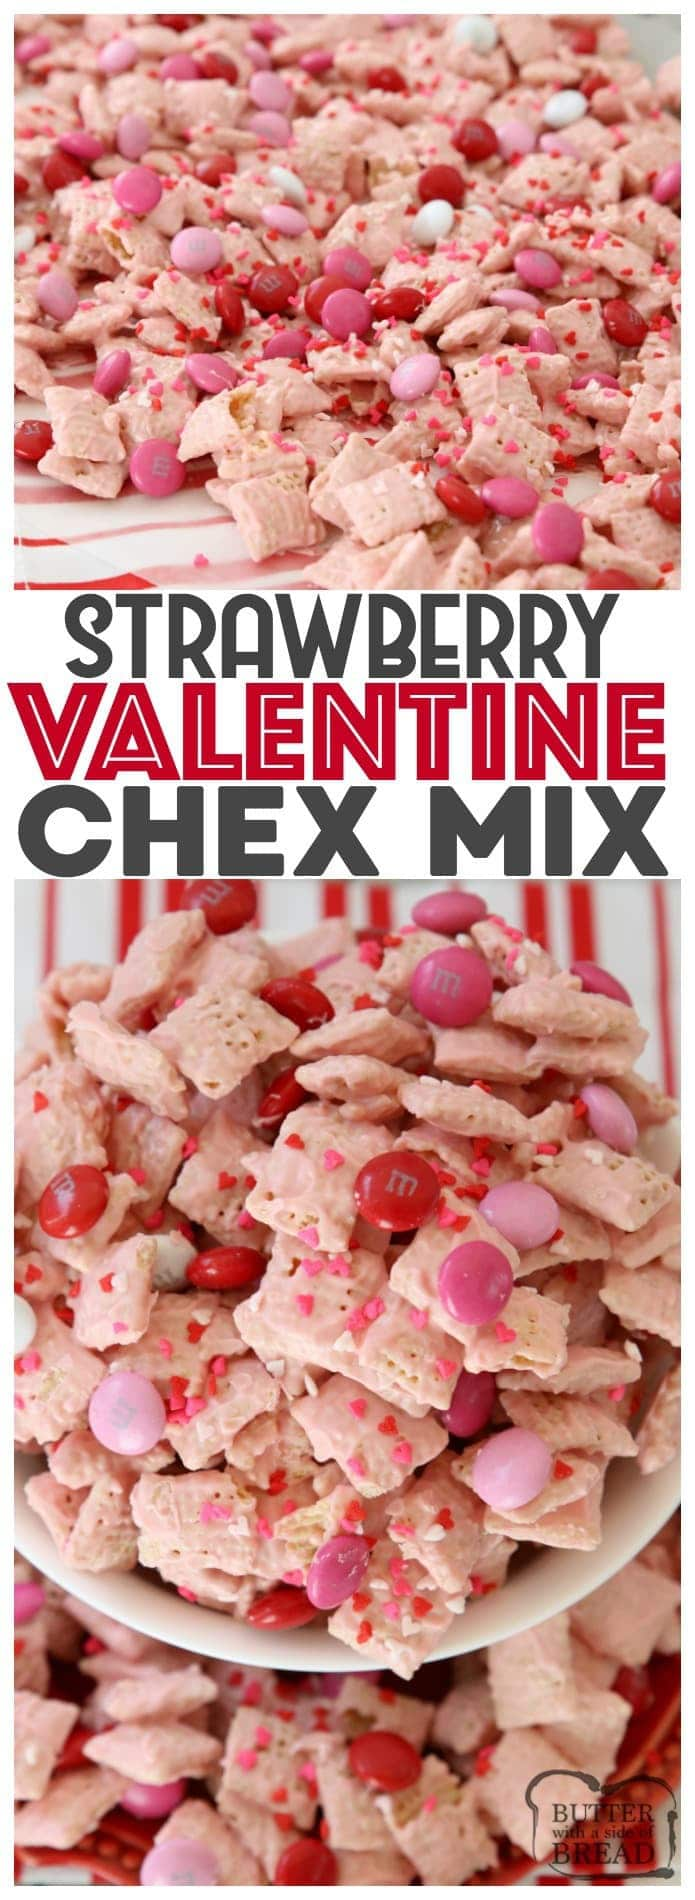 Strawberry Valentine Chex Mix is a delicious snack treat that is fun to make and perfectly festive for Valentine's Day! White chocolate coated Chex Mix cereal with added candies make the perfect sweet treat to share and eat.